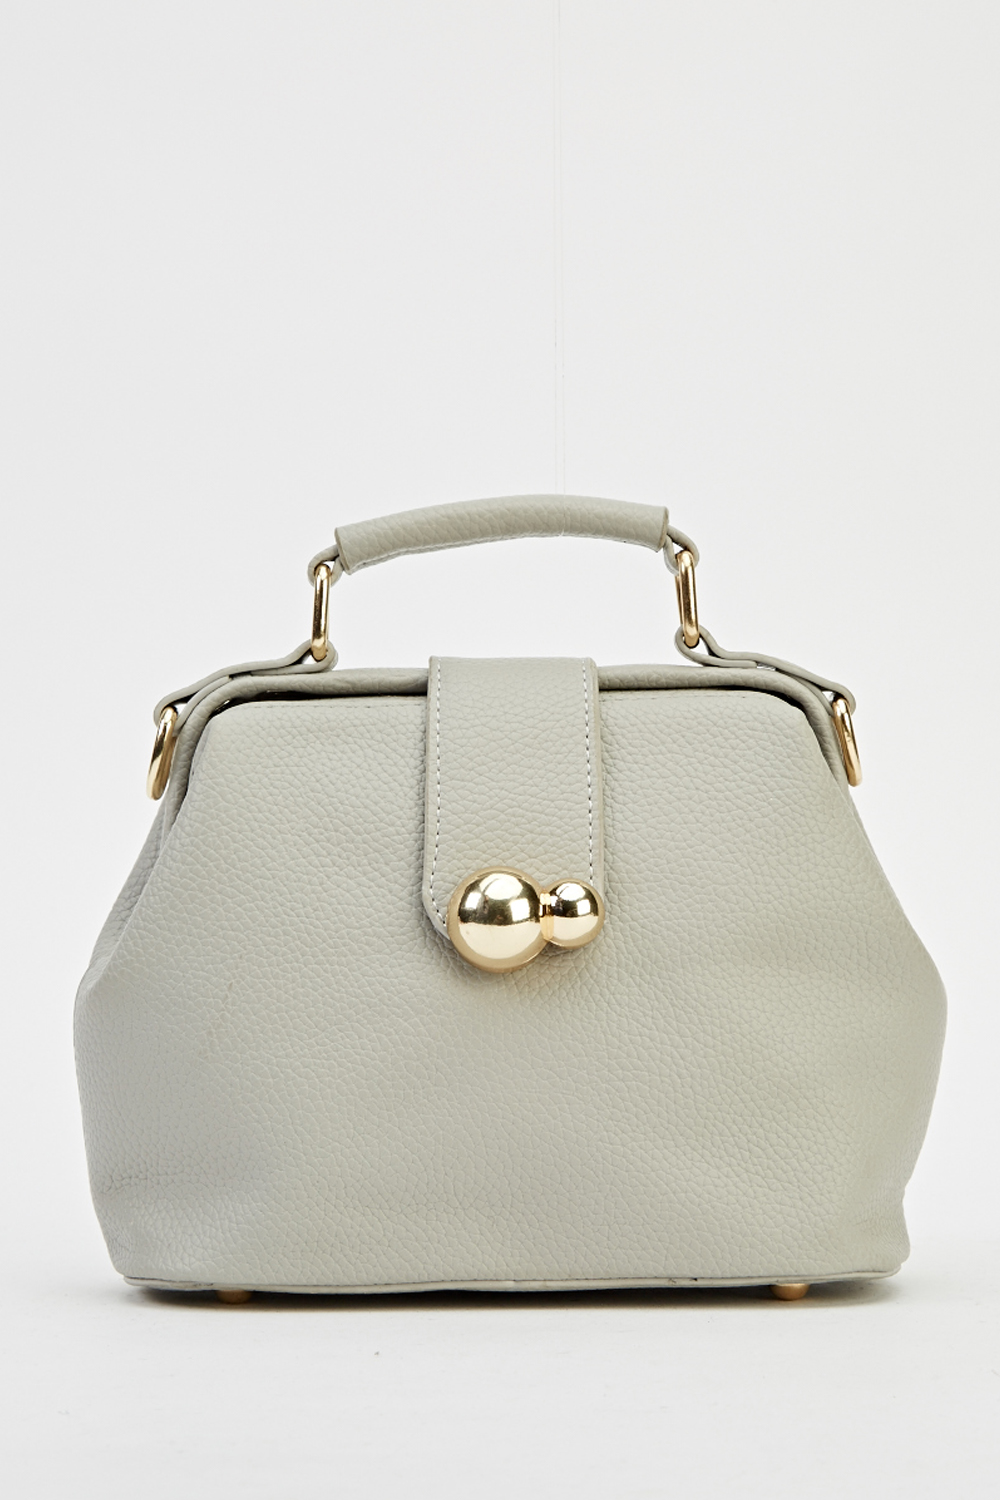 26a53b528a Faux Leather Small Shoulder Bag - Just £5